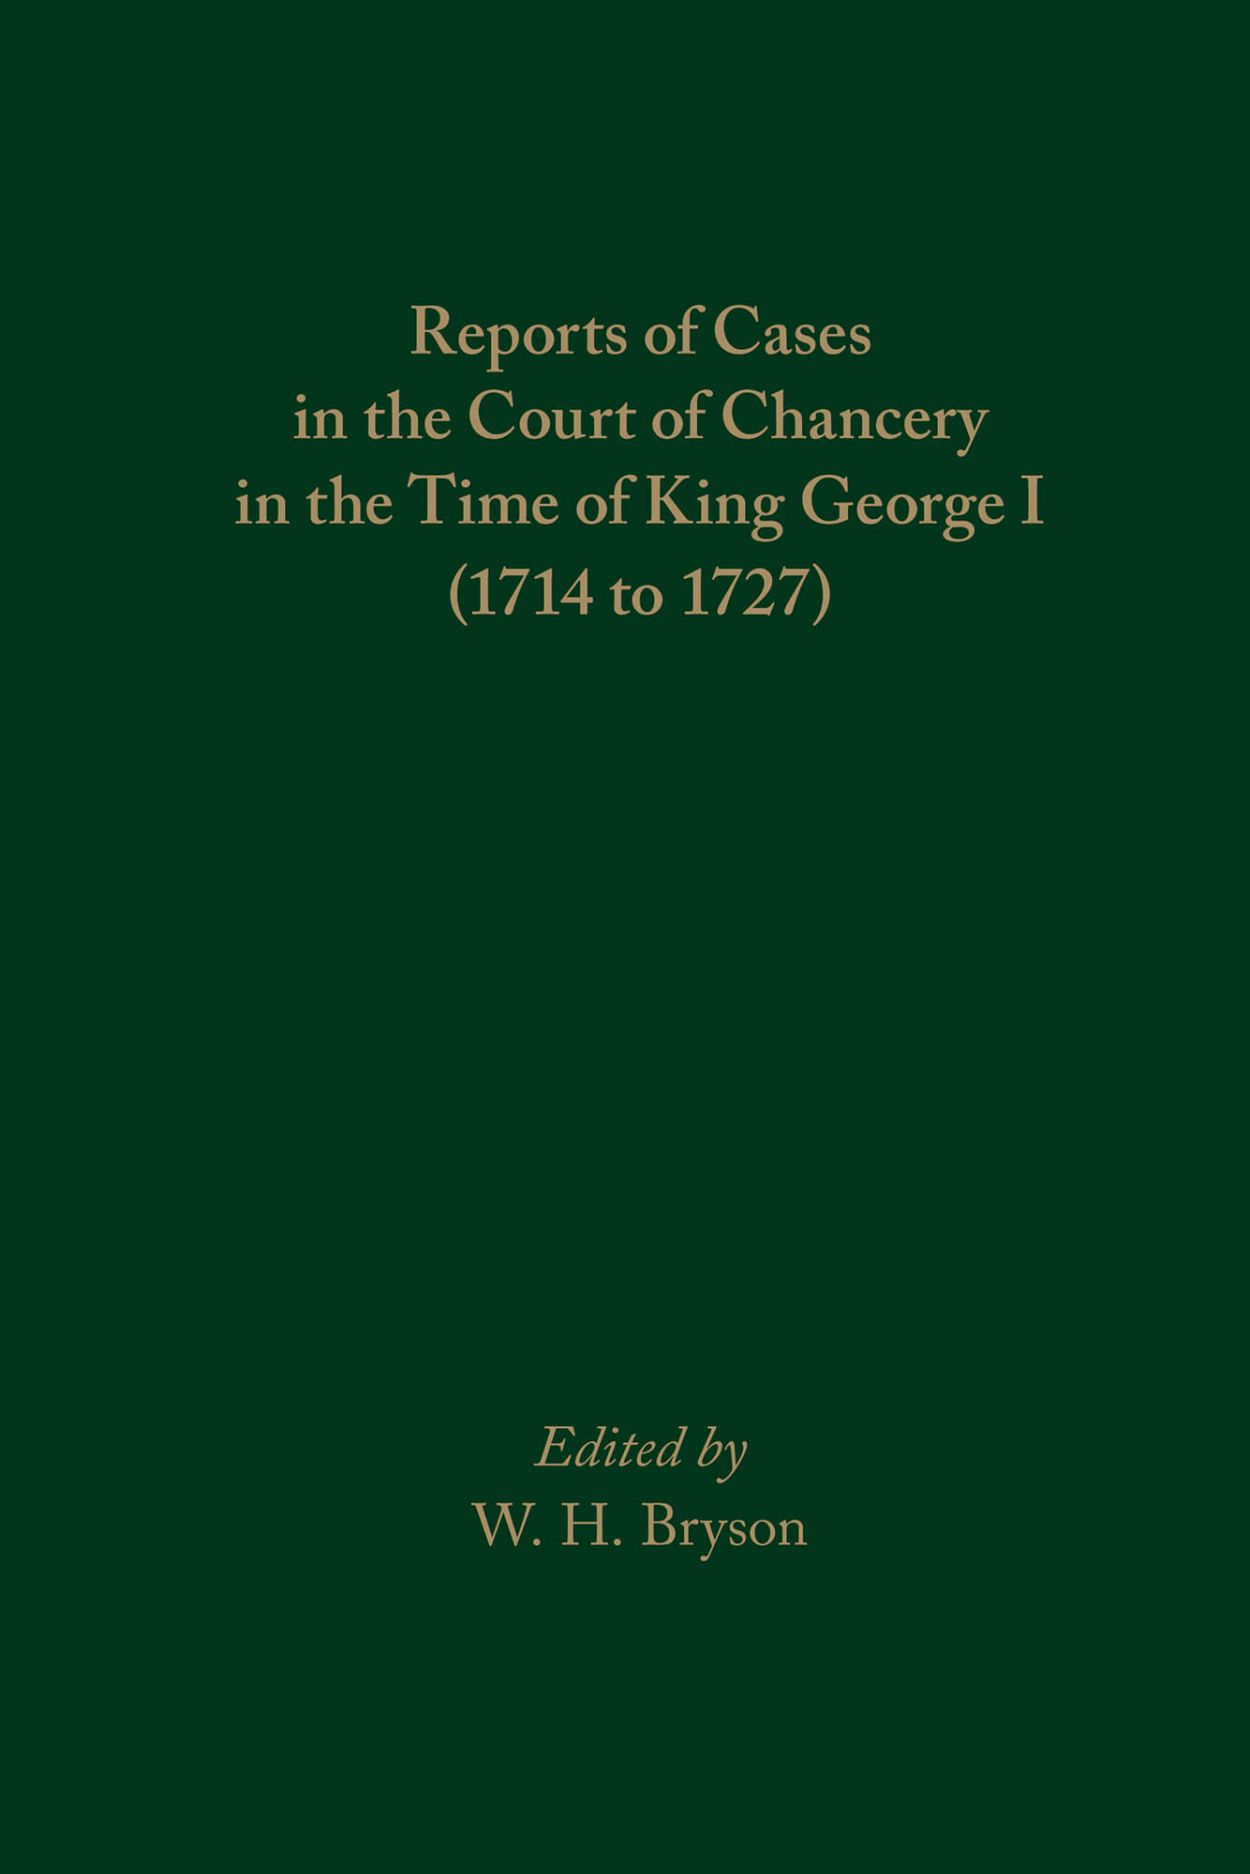 Reports of Cases in the Court of Chancery in the Time of King